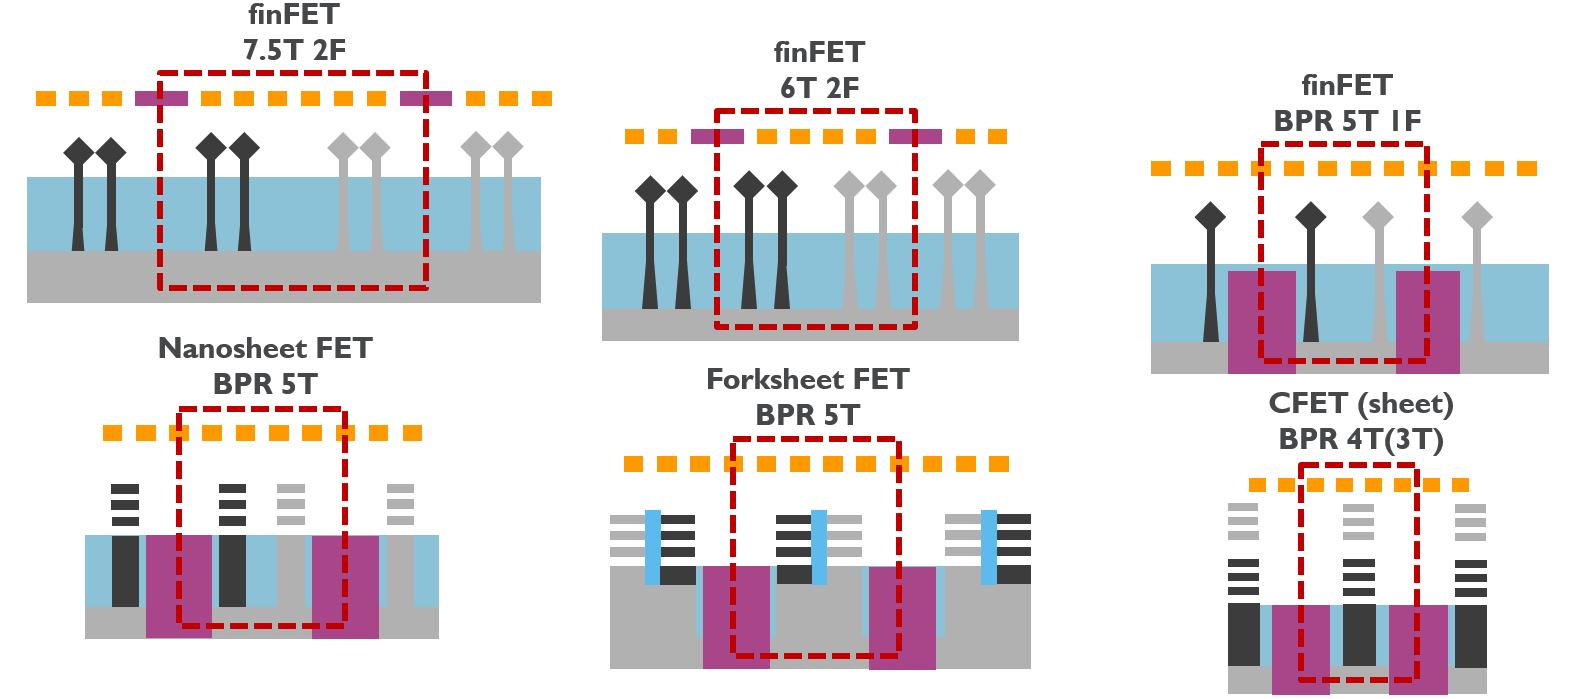 From FinFET to nanosheet, to forksheet and to CFET...